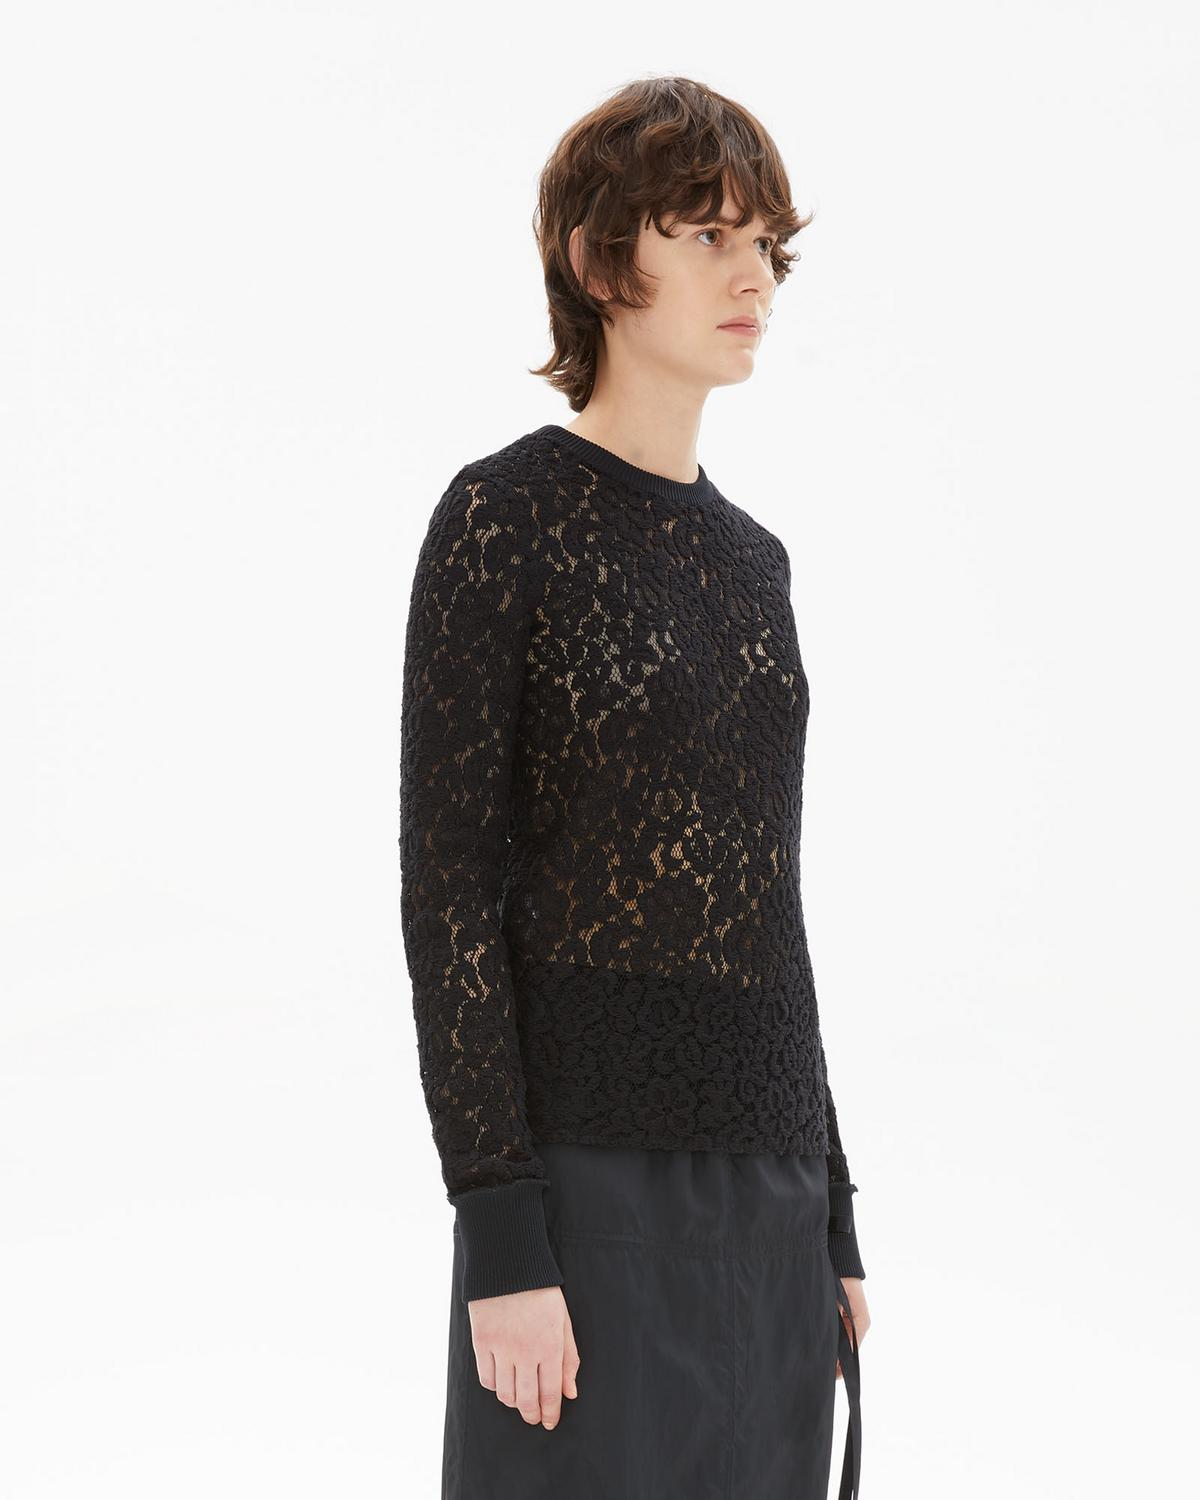 LACE LONGSLEEVE TOP